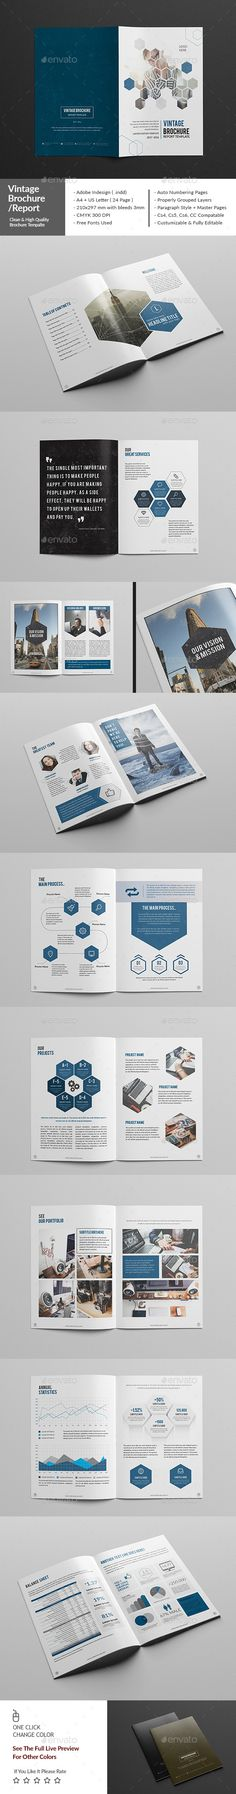 Vintage Corporate Brochure / Report Template InDesign INDD #design Download: http://graphicriver.net/item/vintage-corporate-brochurereport/14518138?ref=ksioks